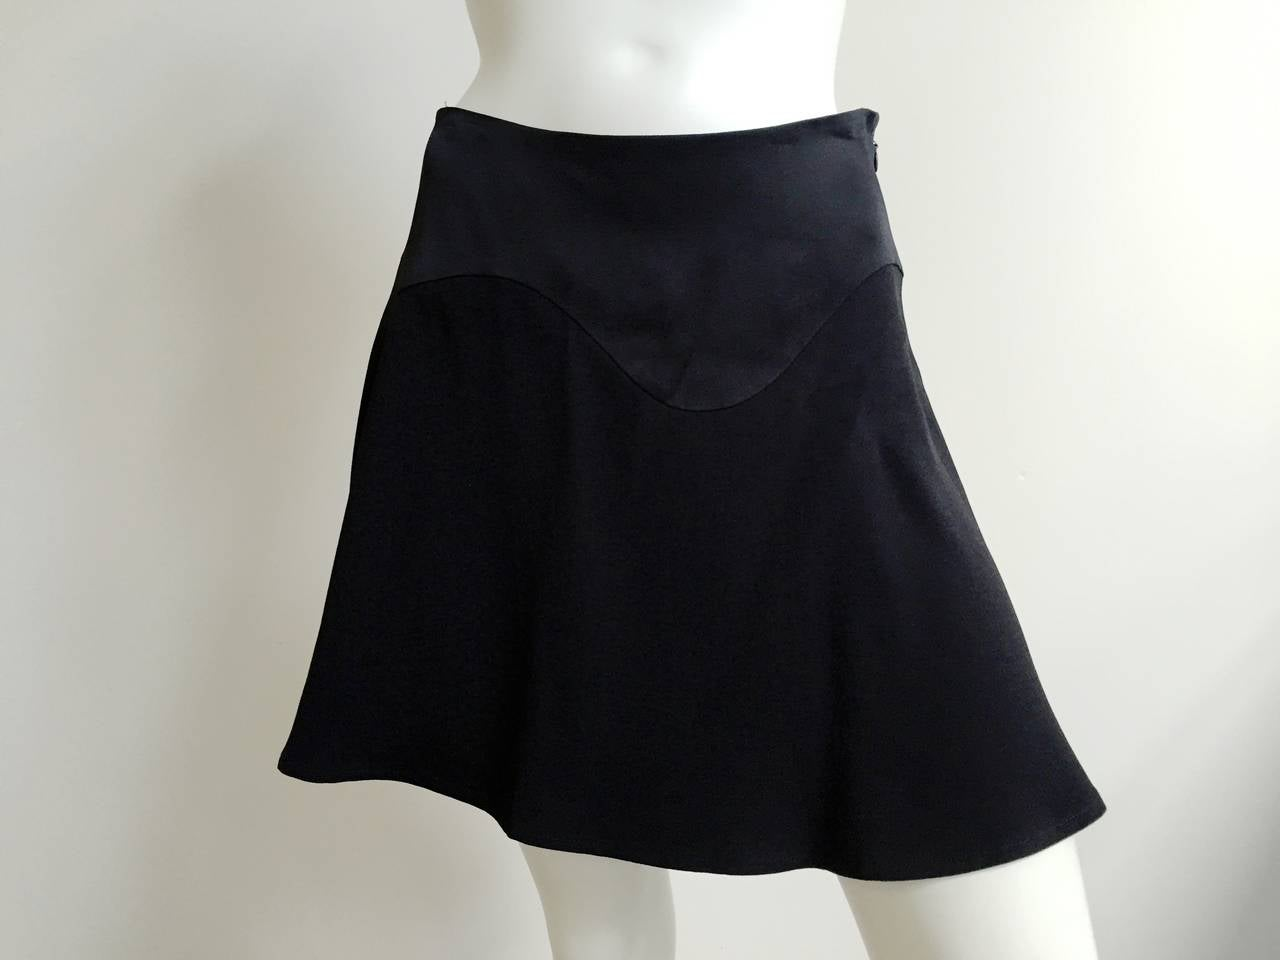 Moschino Cheap and Chic black short sexy skirt size 6. 2